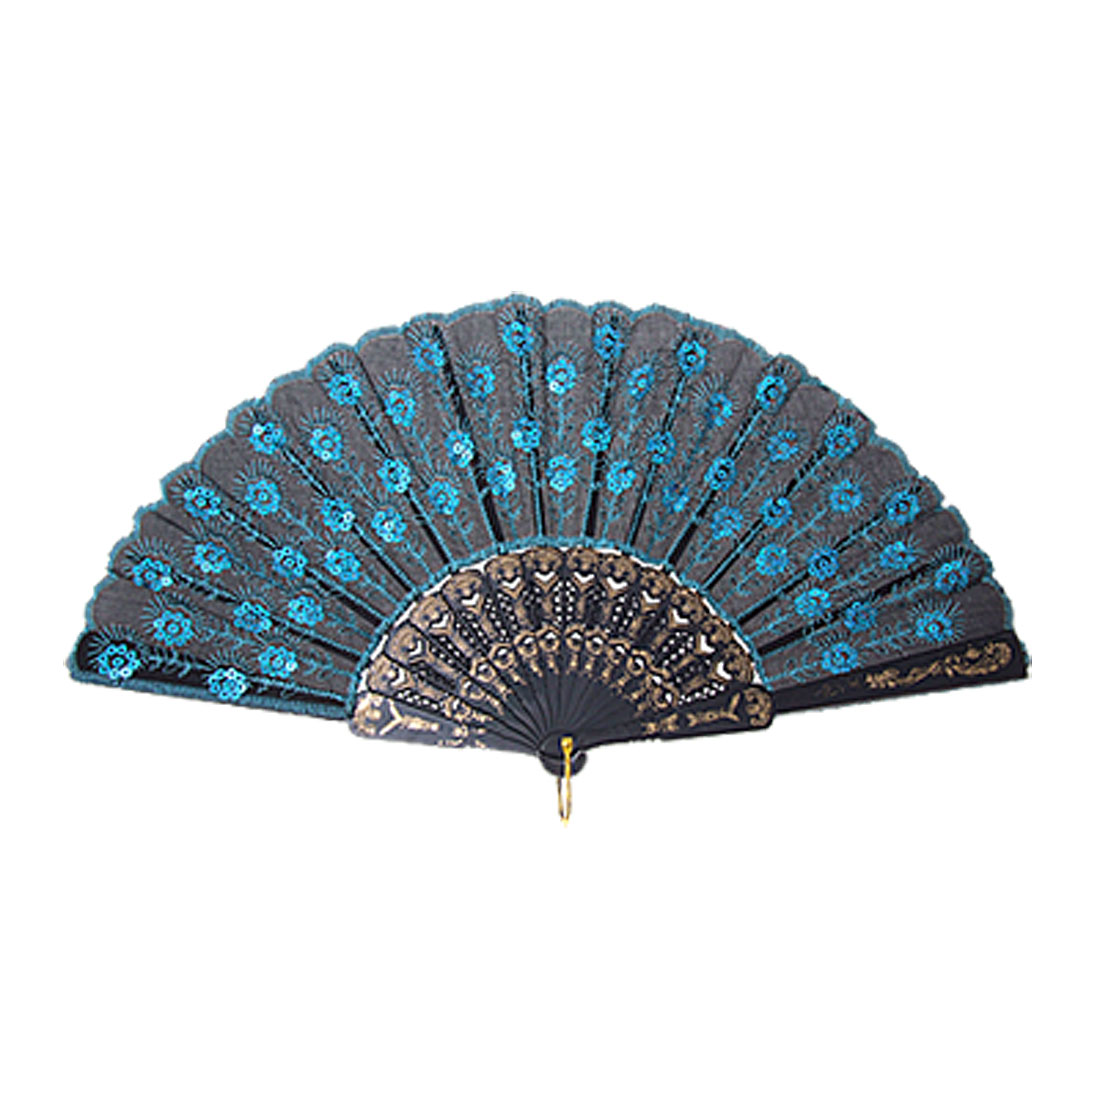 Black Peacock Style Cloth Blue Sequin Embroider Hand Fan